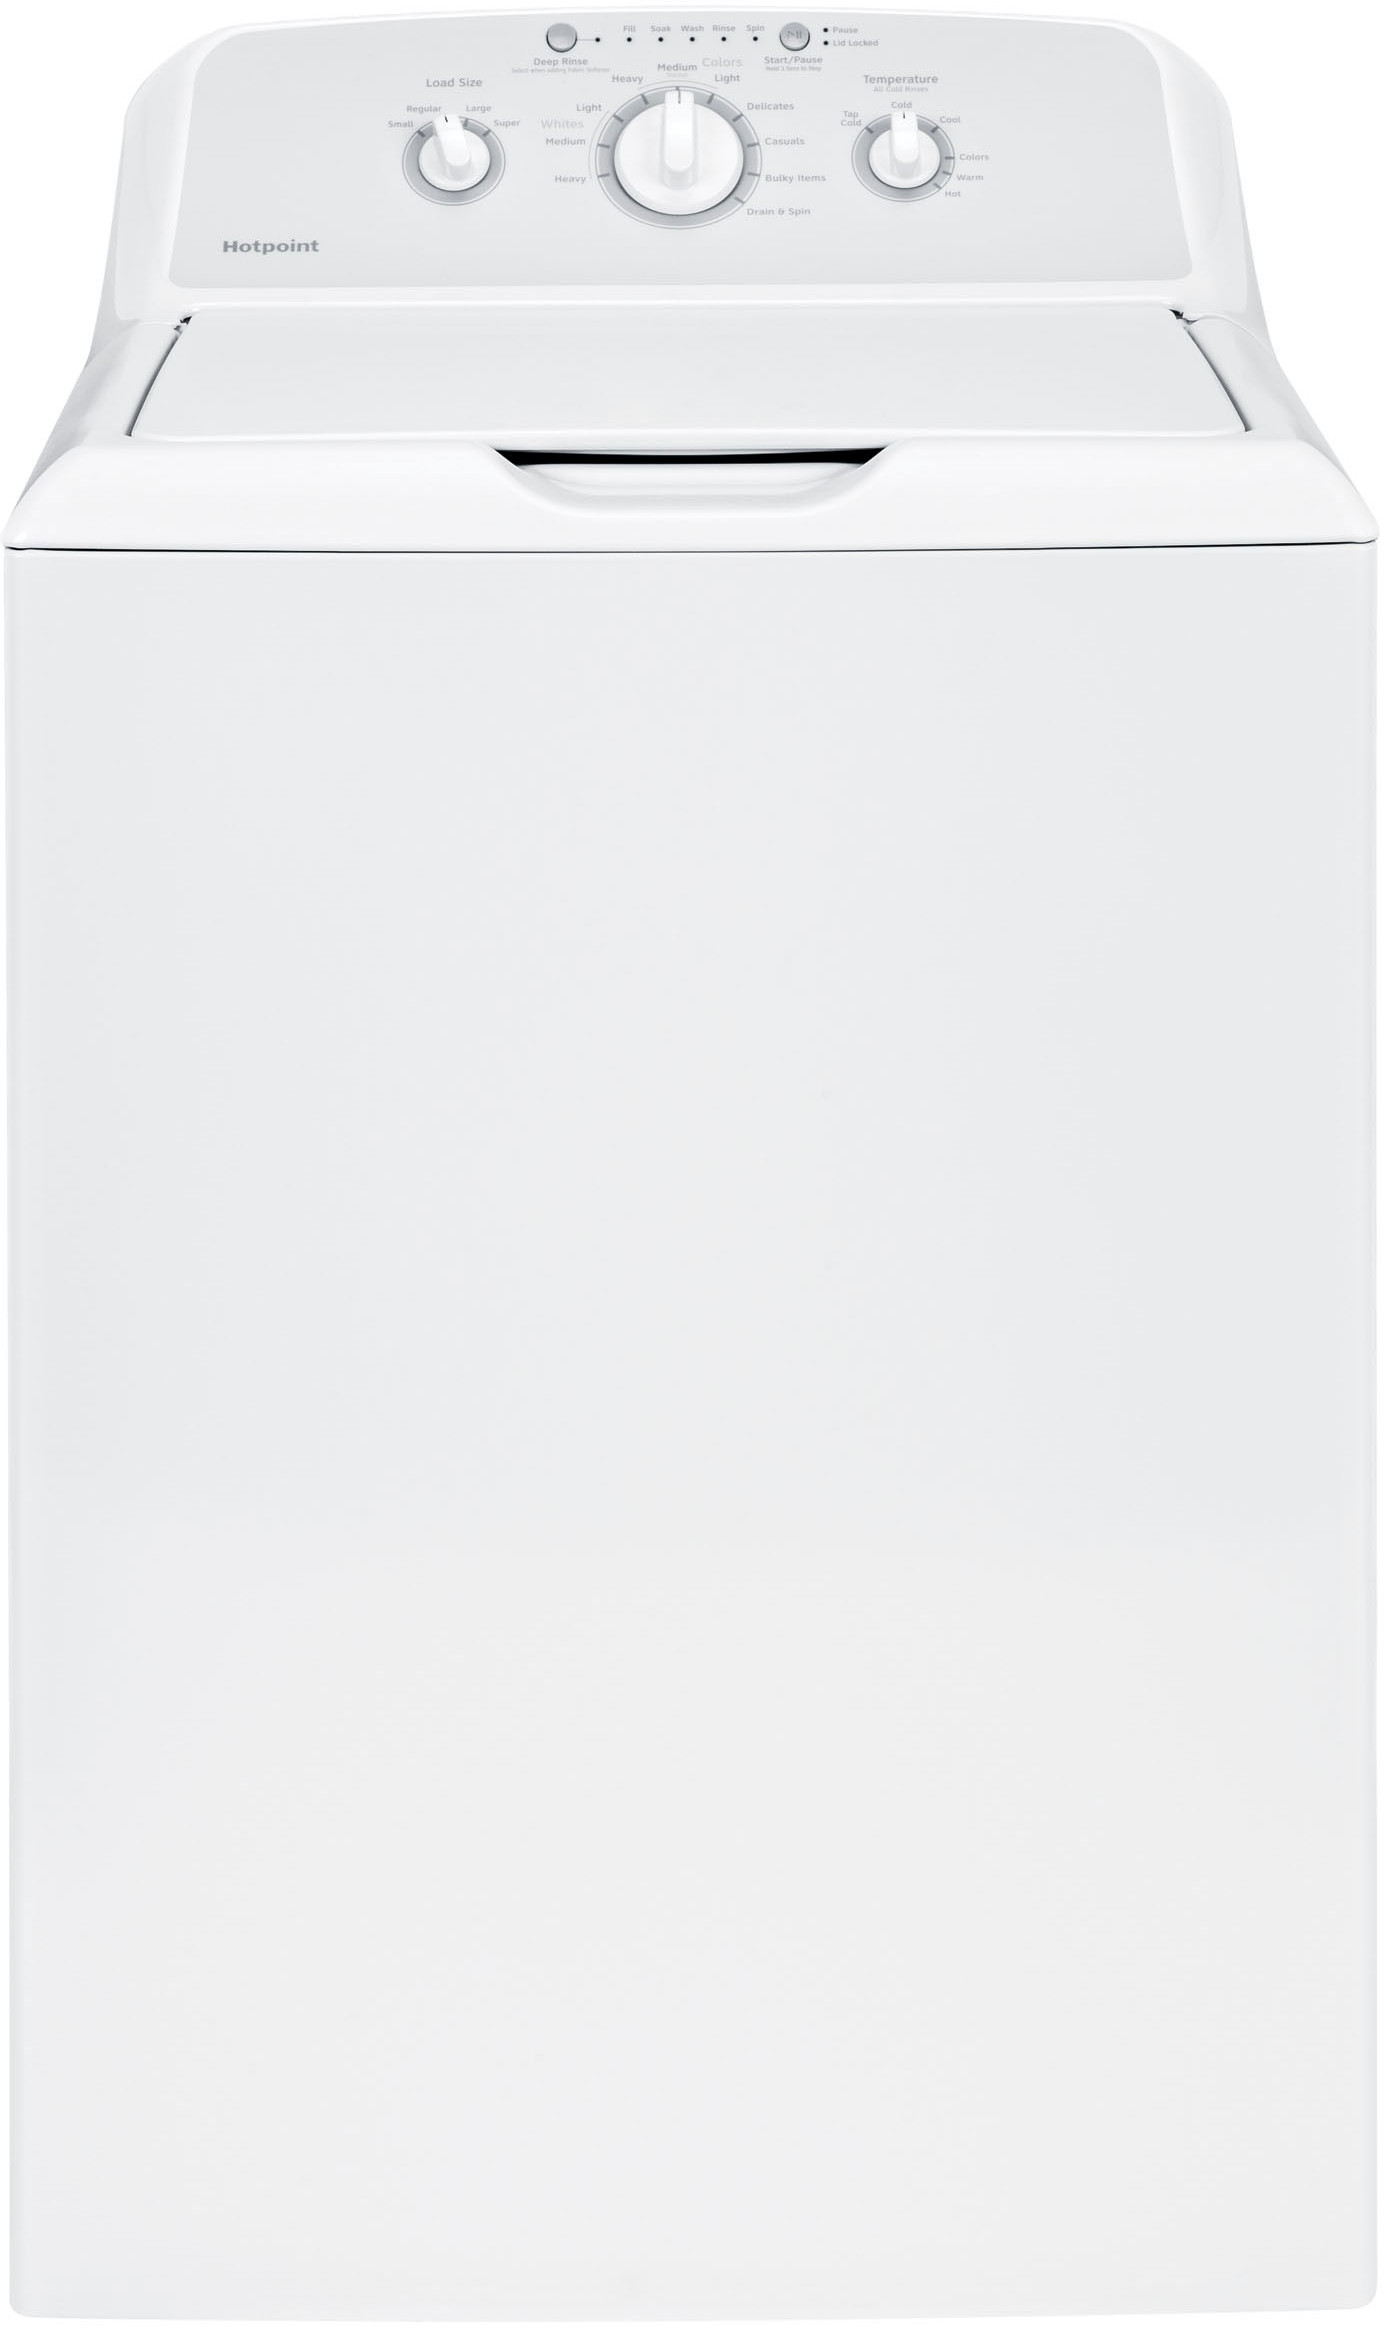 Hotpoint HTW240ASKWS 27 Inch Top Load Washer with 3.6 cu